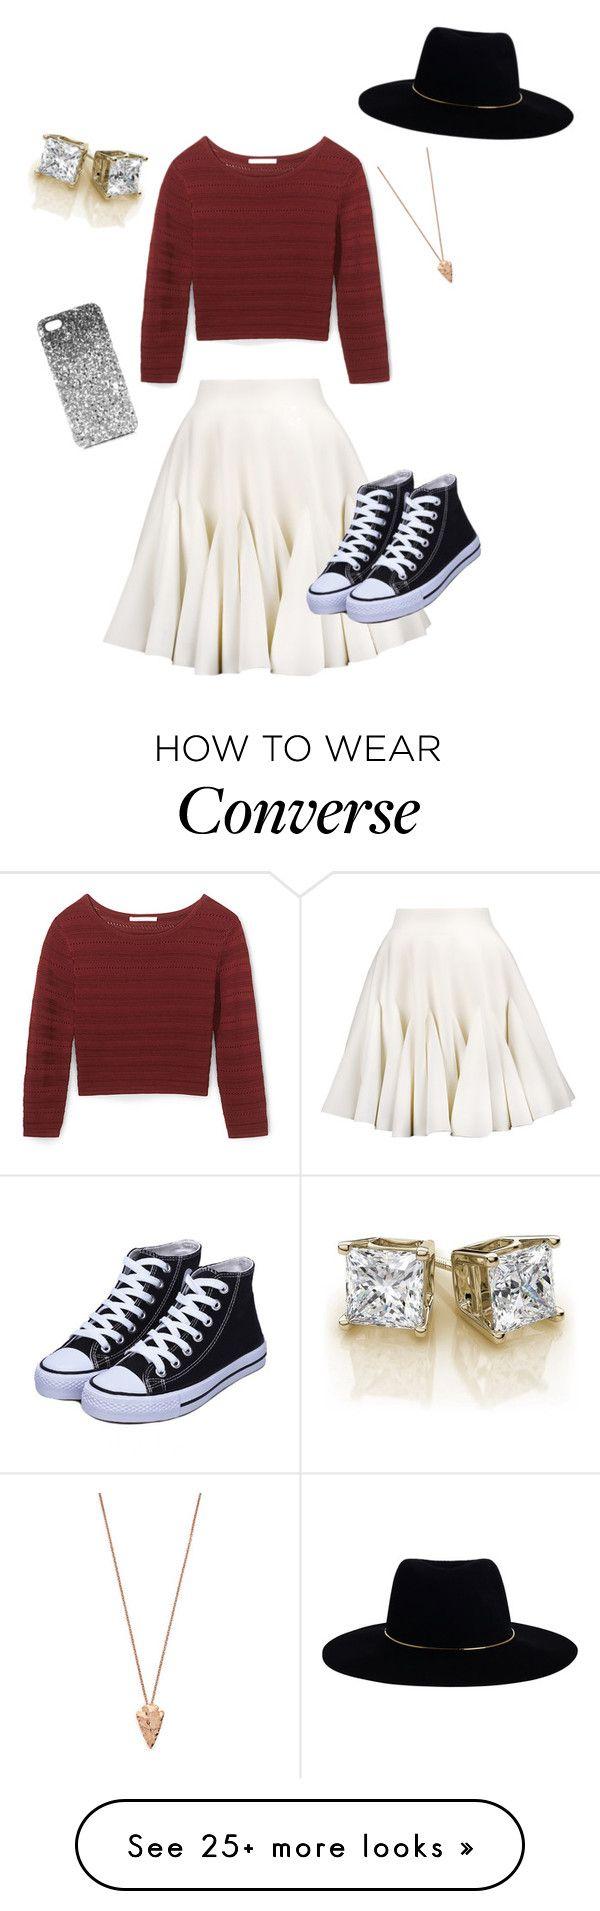 """Rockin the converse"" by suefashiondiva09 on Polyvore featuring Rebecca Minkoff, Pamela Love, Zimmermann and Topshop"